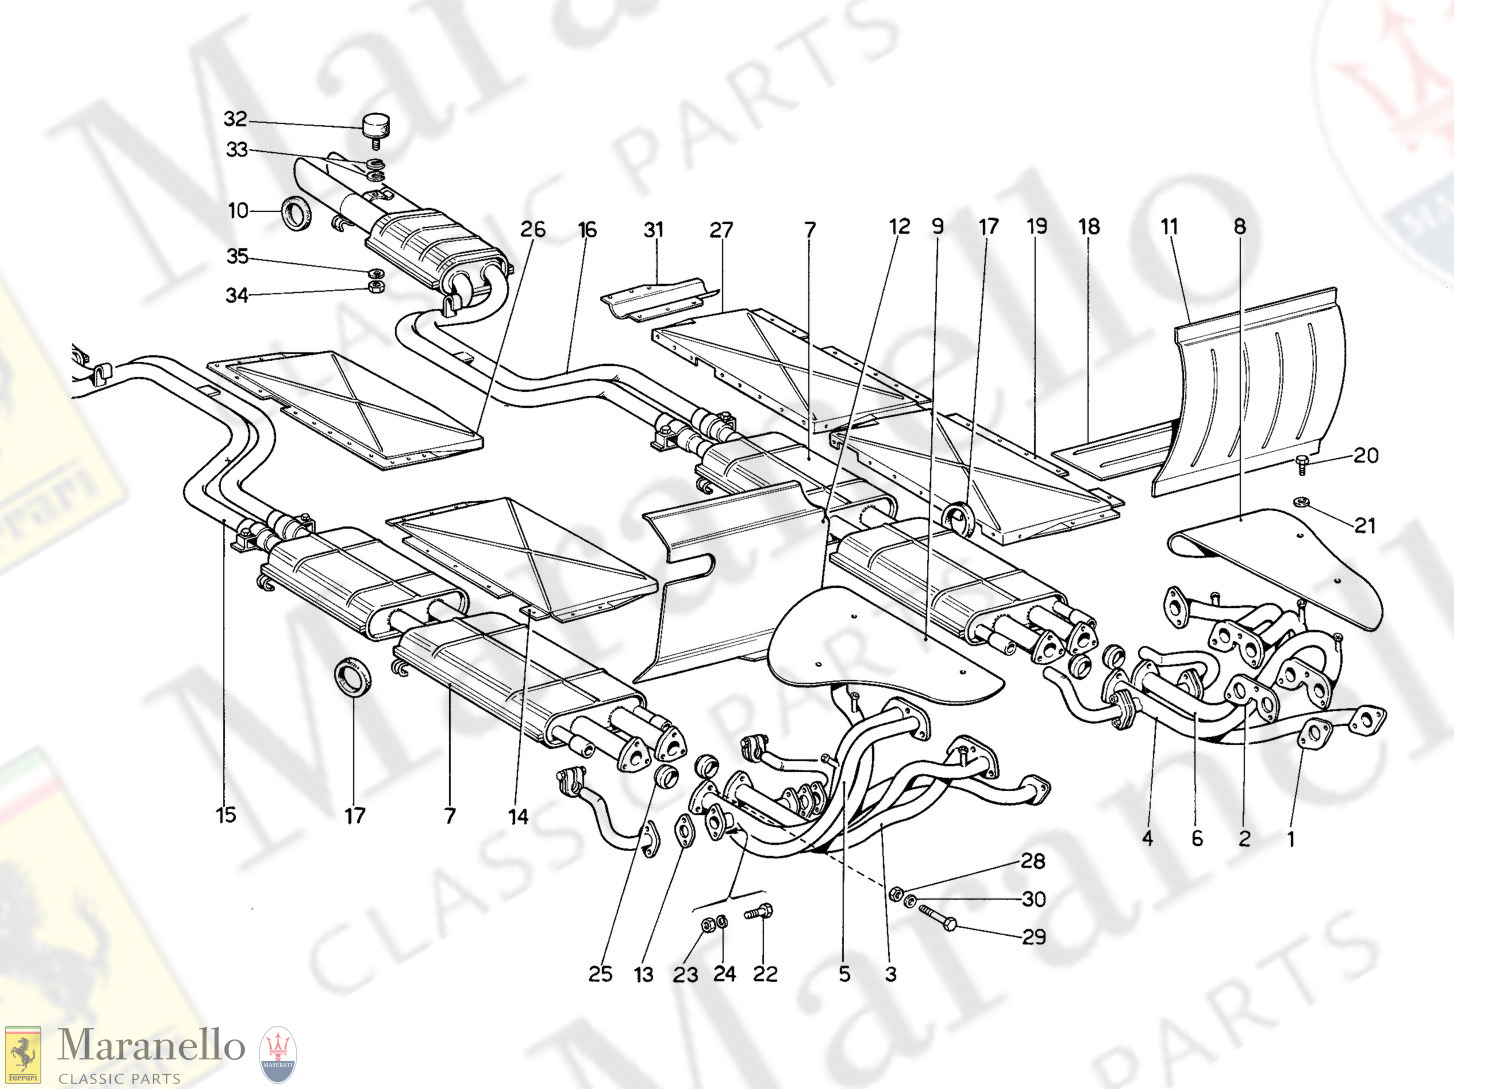 014 - Exhaust Manifold And Piping